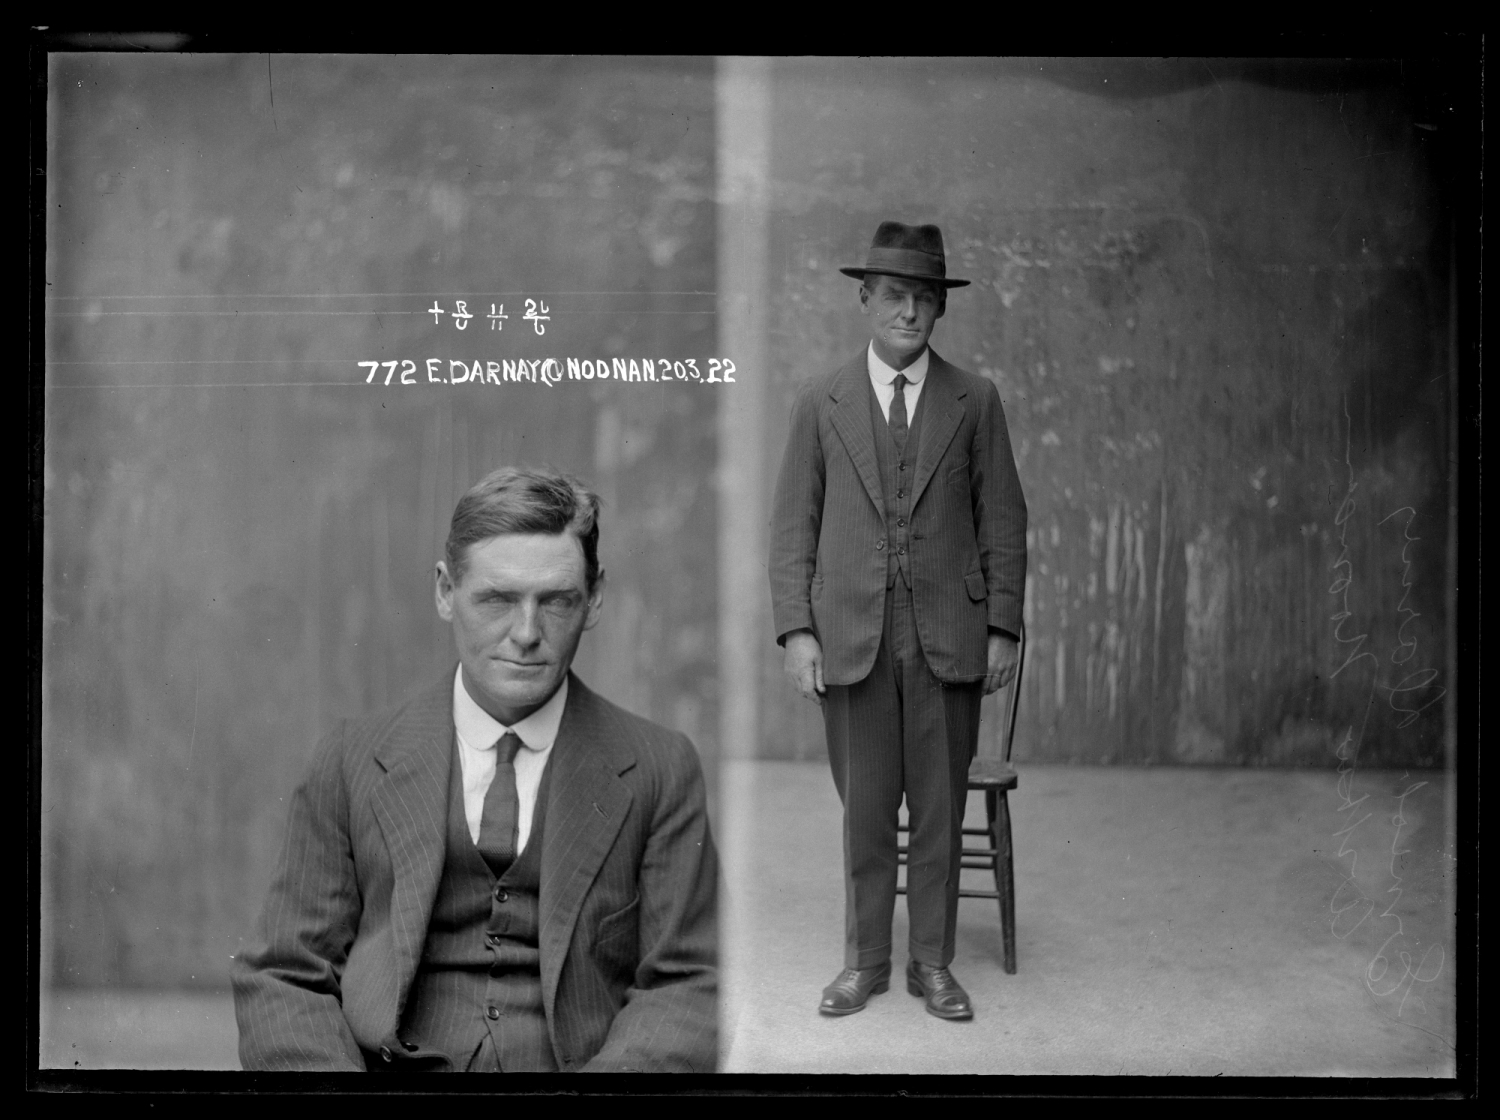 Two photos side by side; man seated and man standing, with hat on.